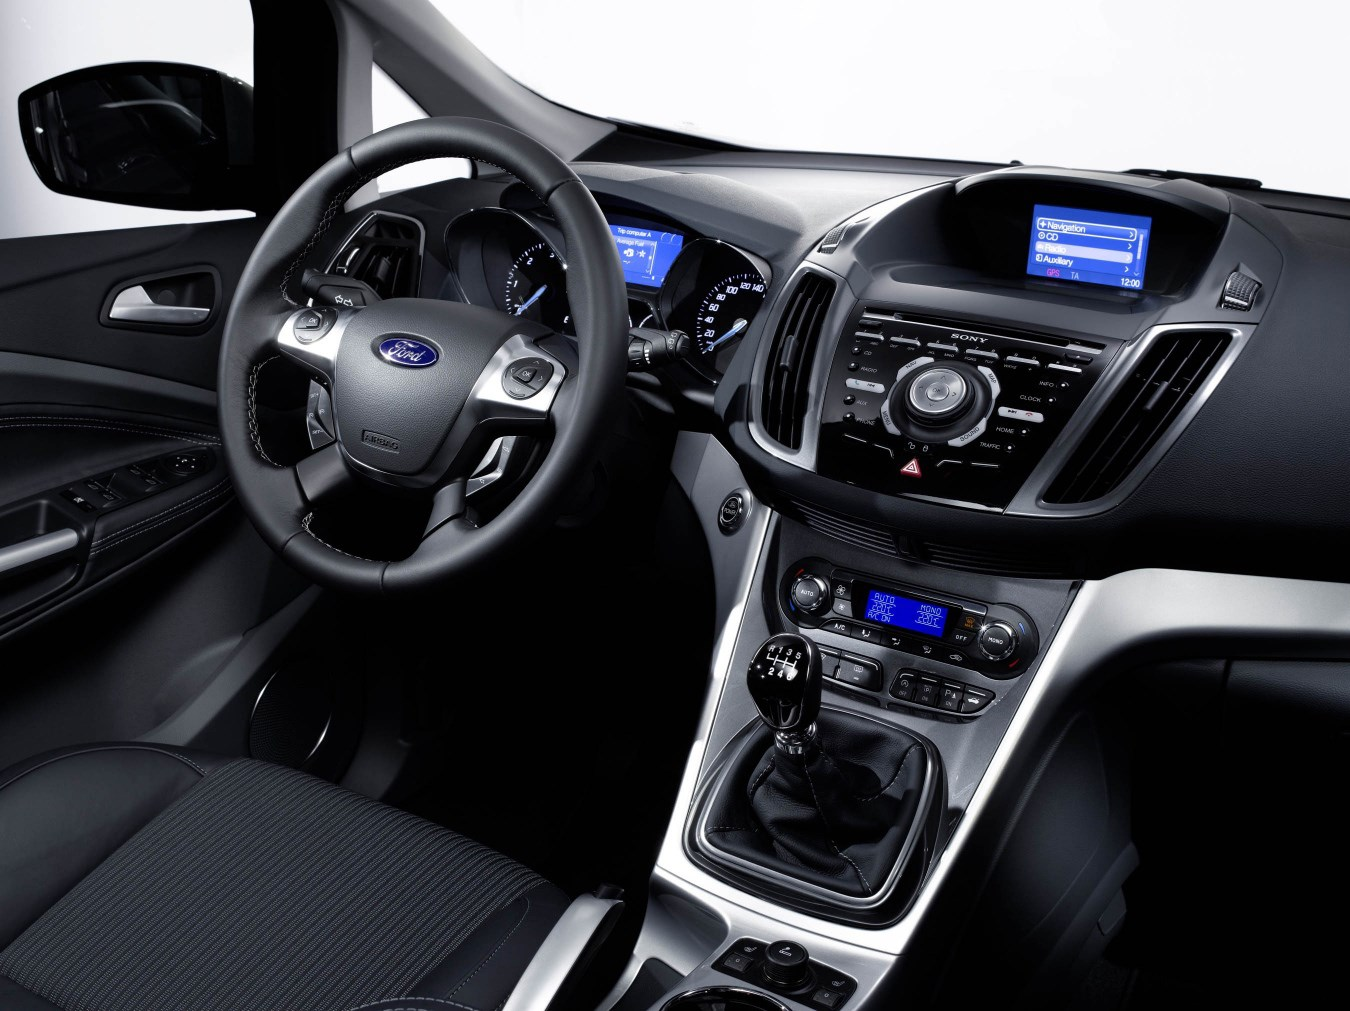 ford c-max estate review (2010 - ) | parkers